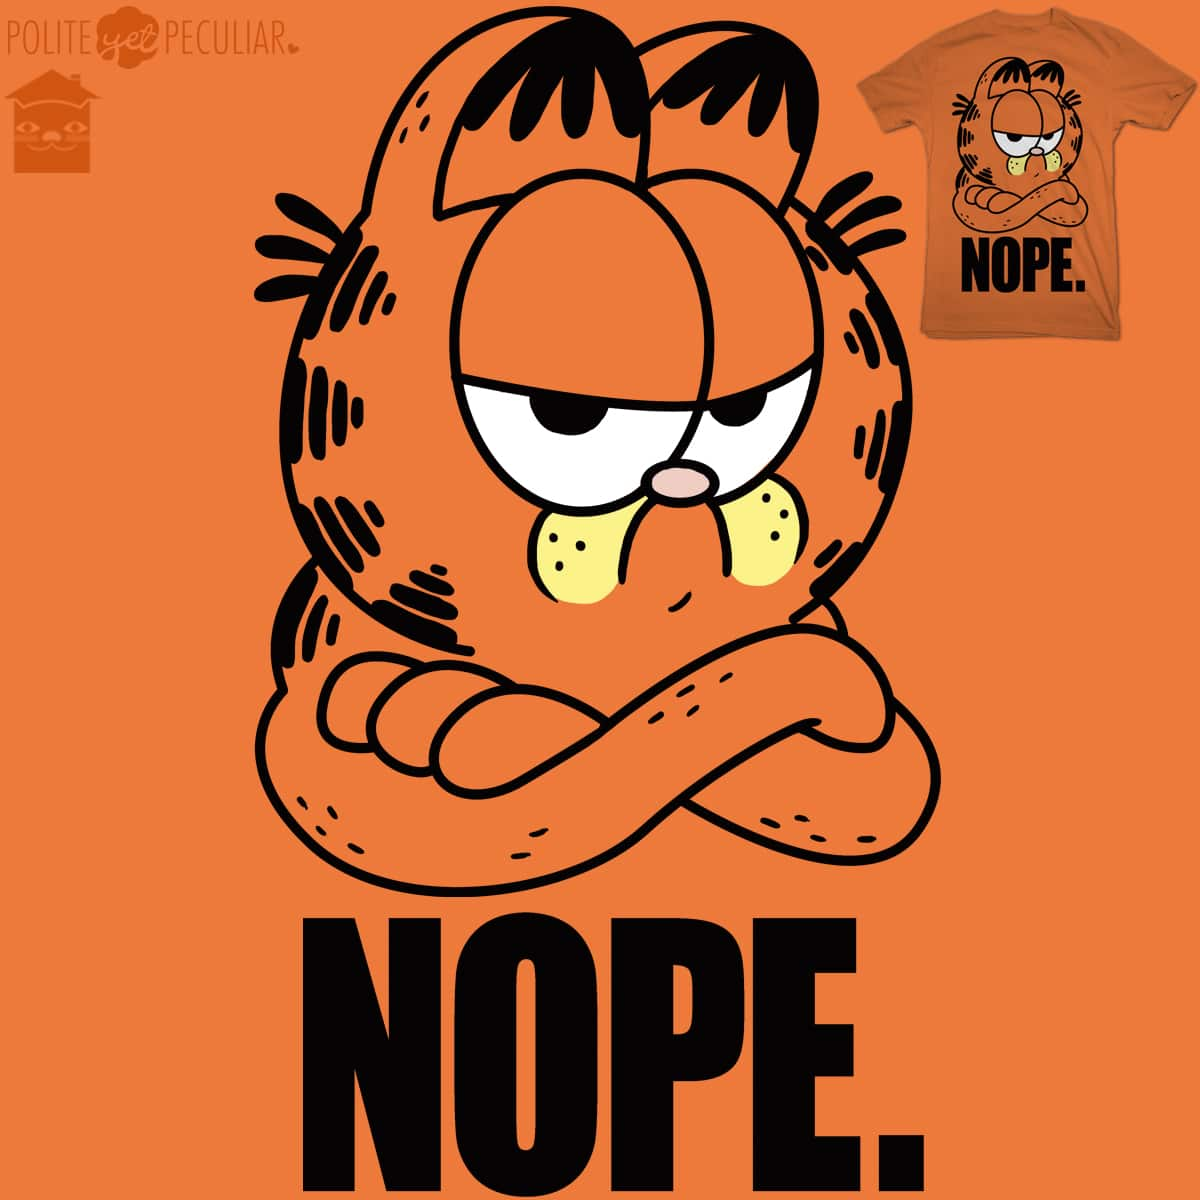 Nope. by JIMDAHOUSECAT and TheInfamousBaka on Threadless